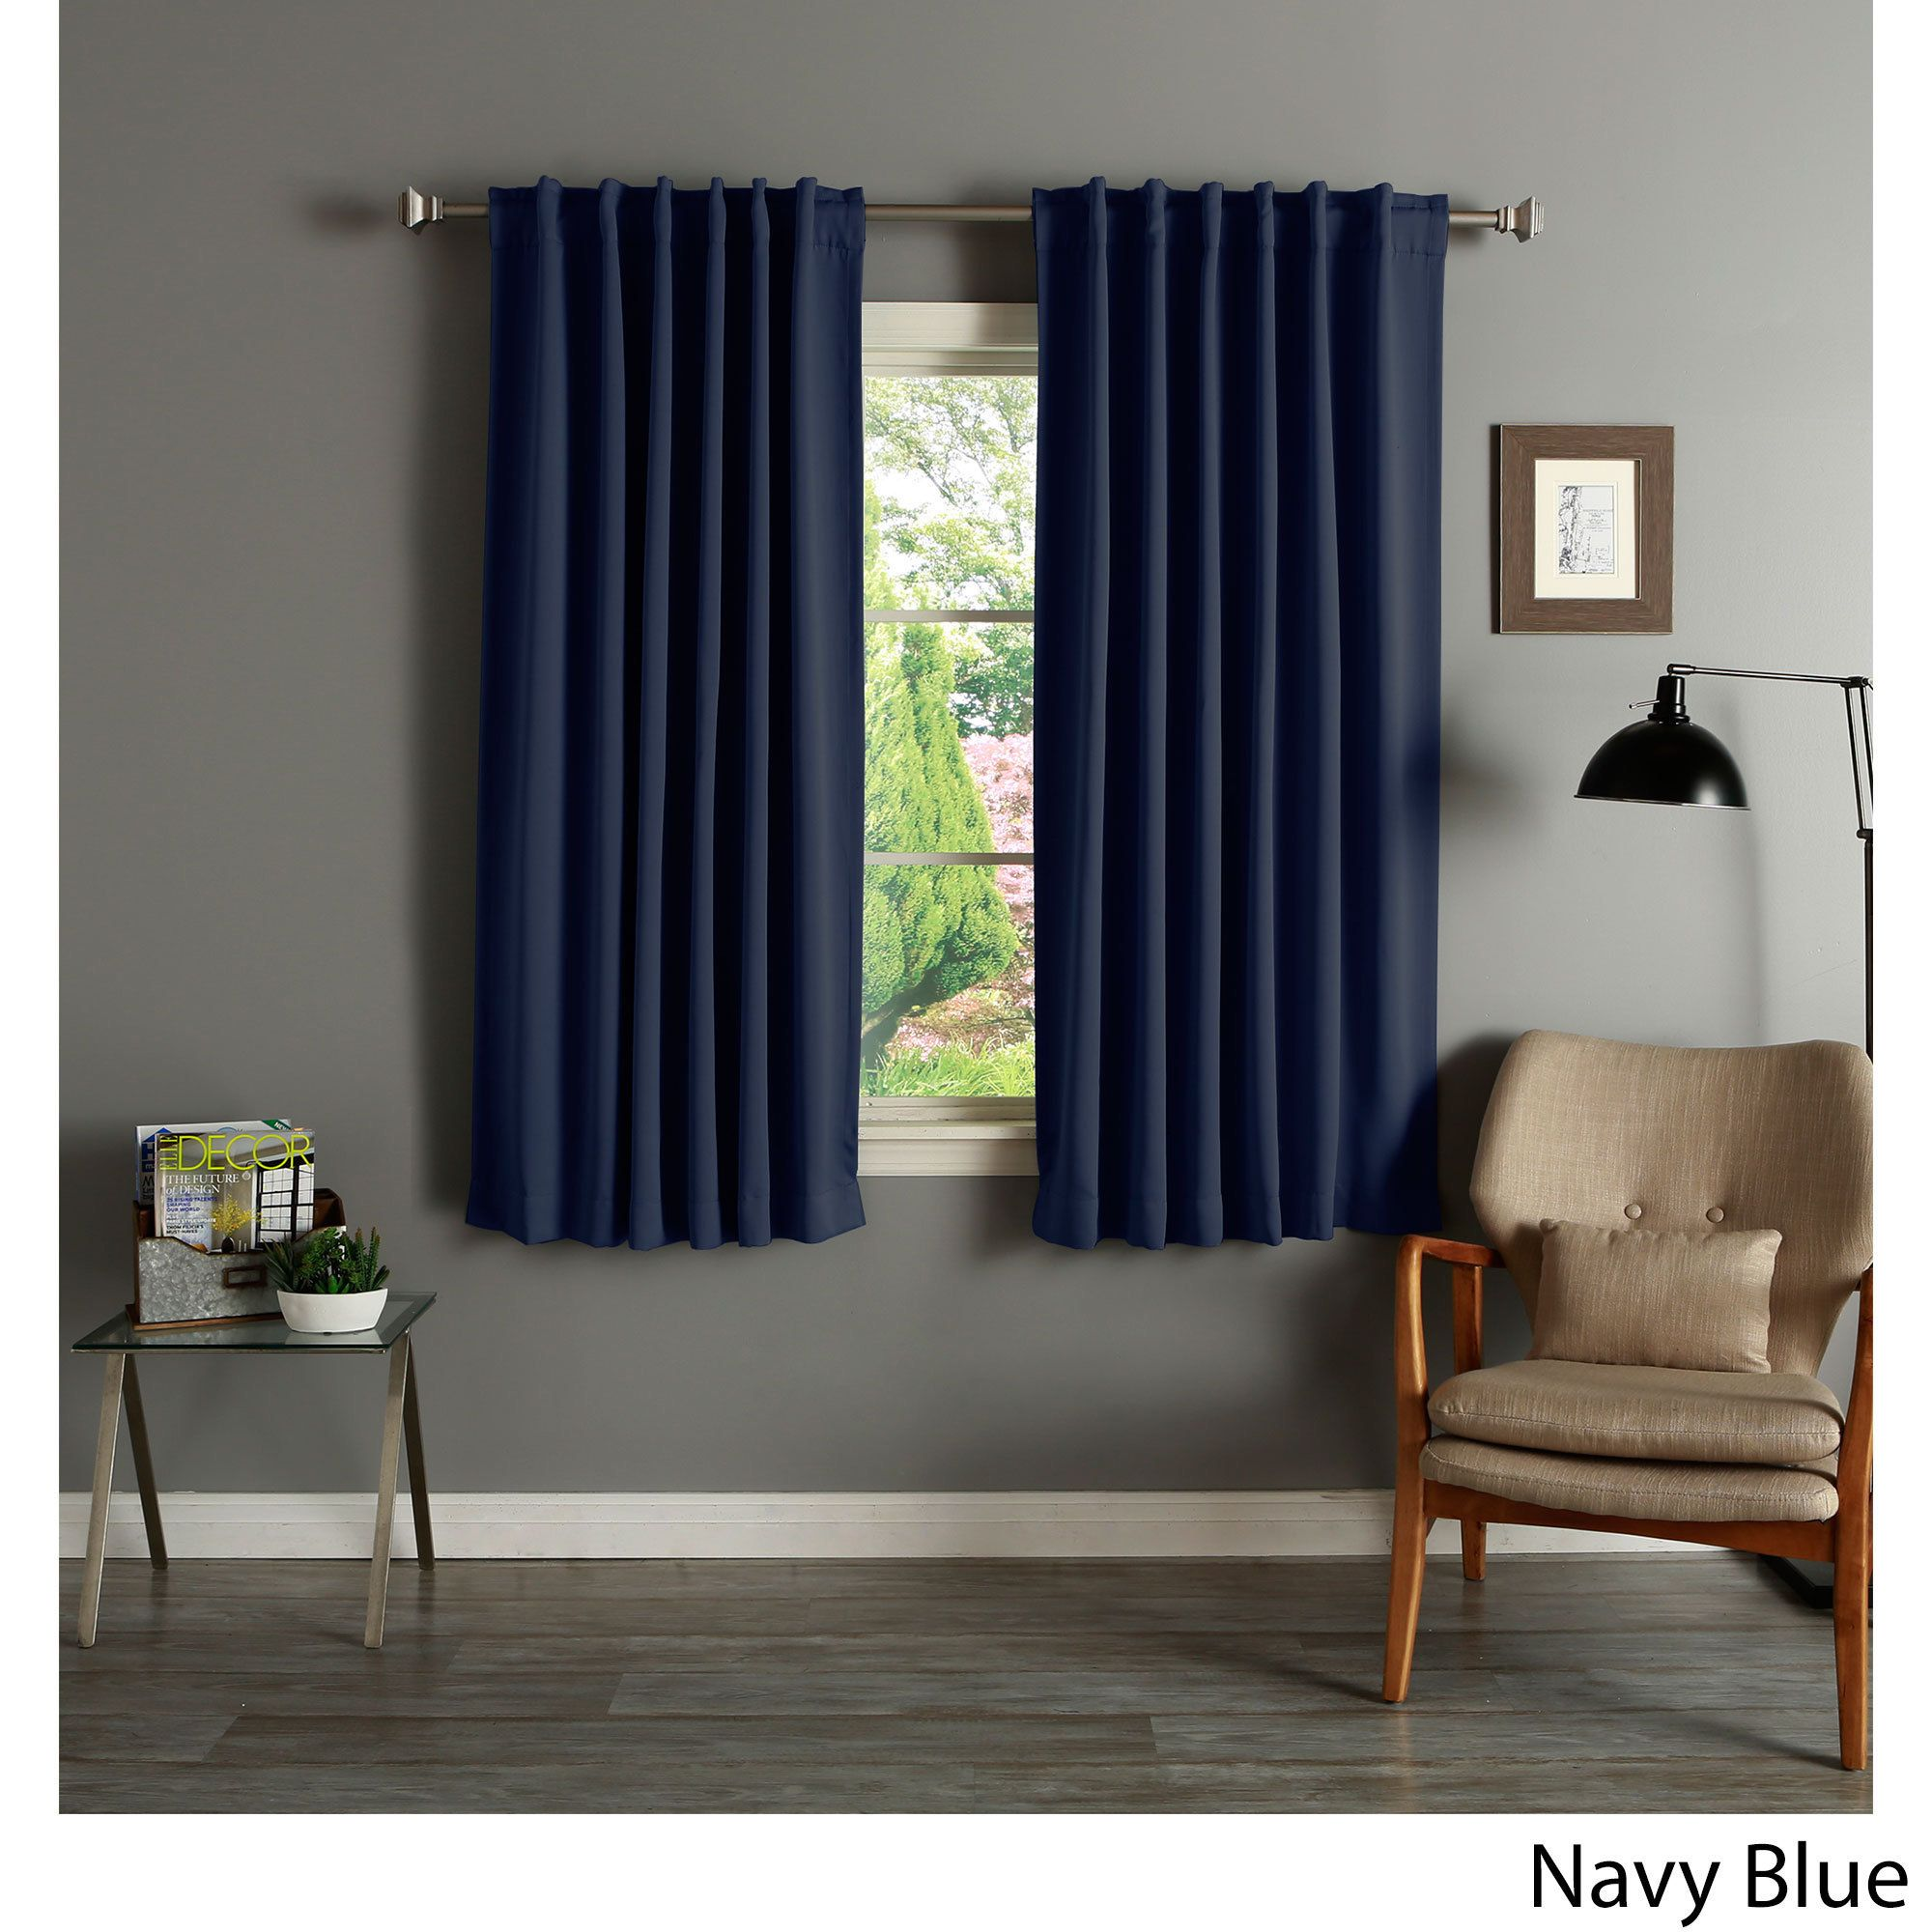 Large Of Navy Blue Curtains